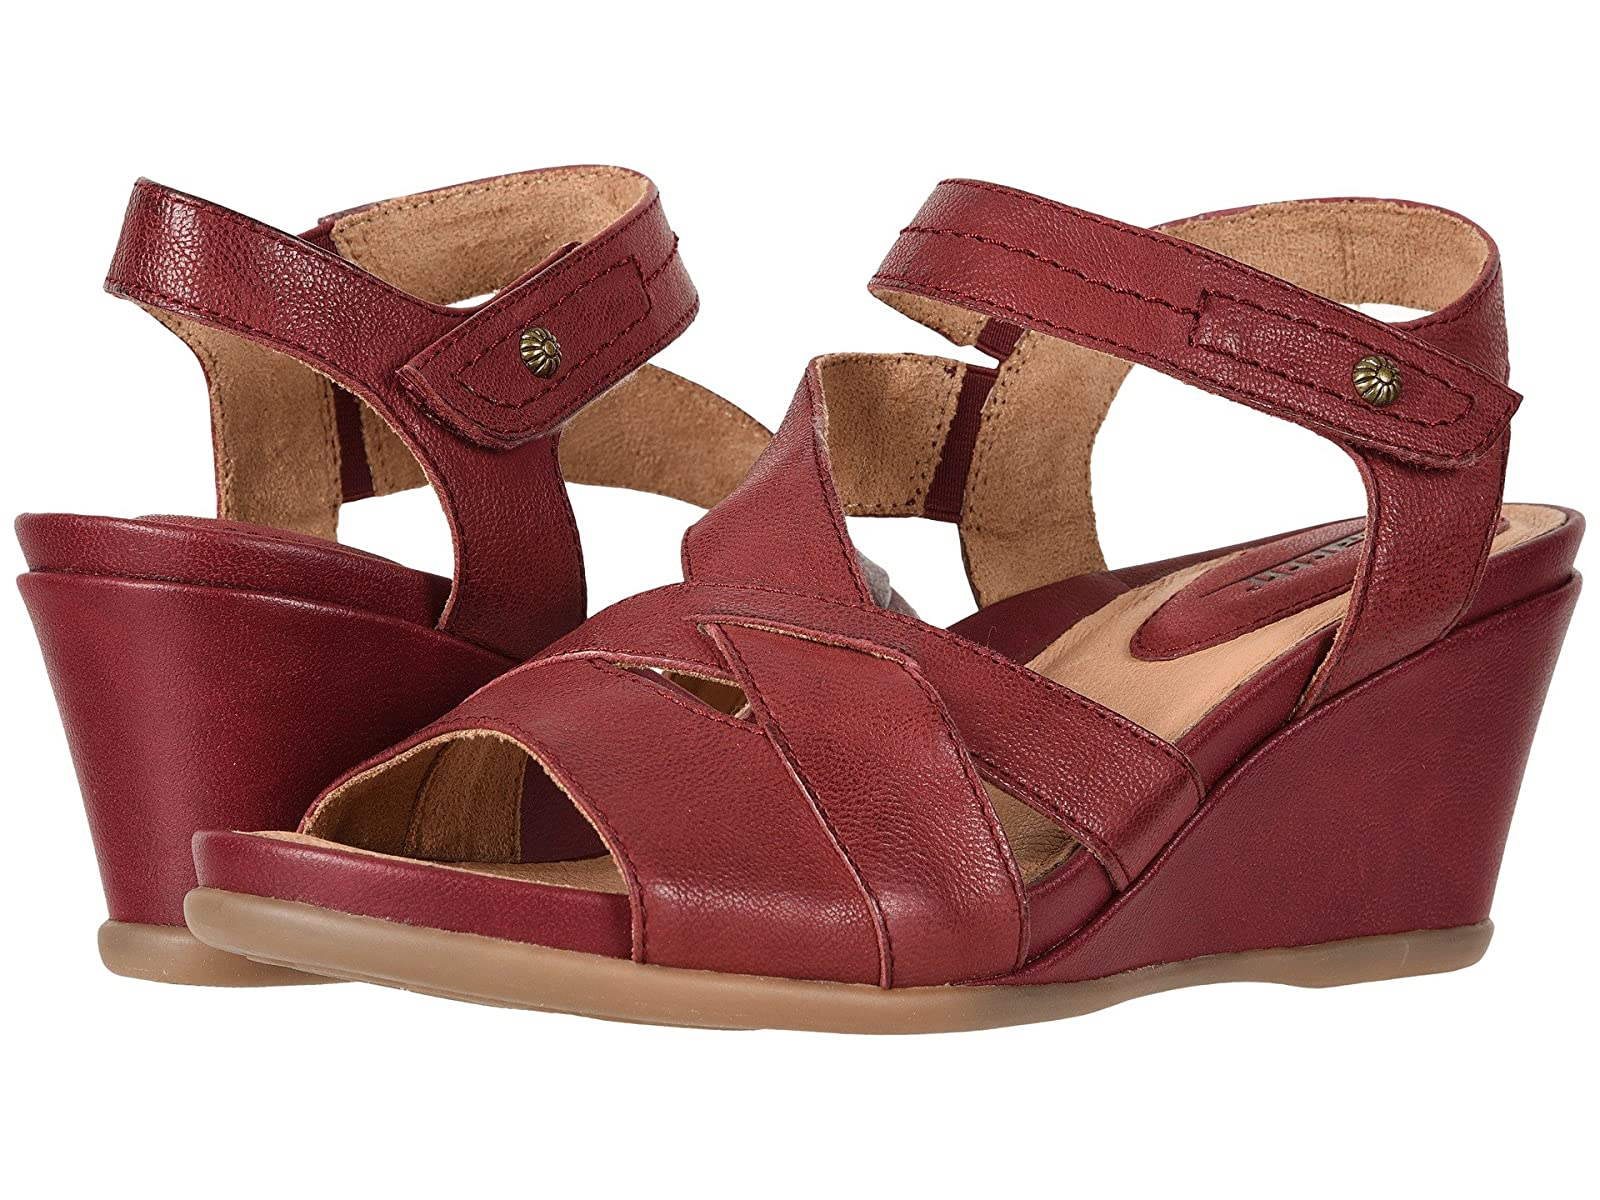 Earth ThistleCheap and distinctive eye-catching shoes